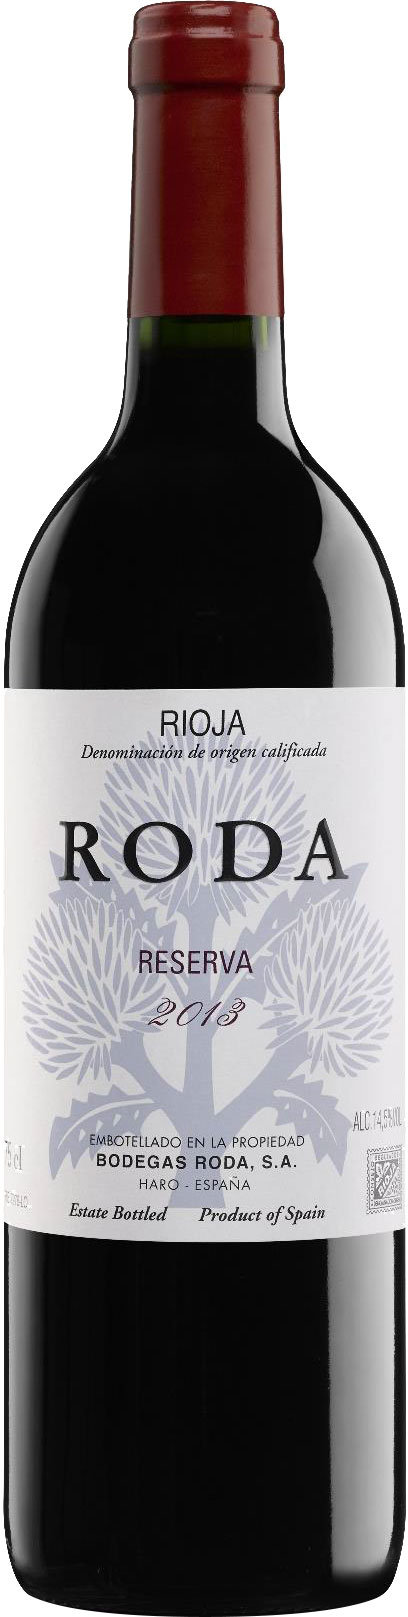 Bodegas Roda - Roda Reserva 2013 75cl Bottle